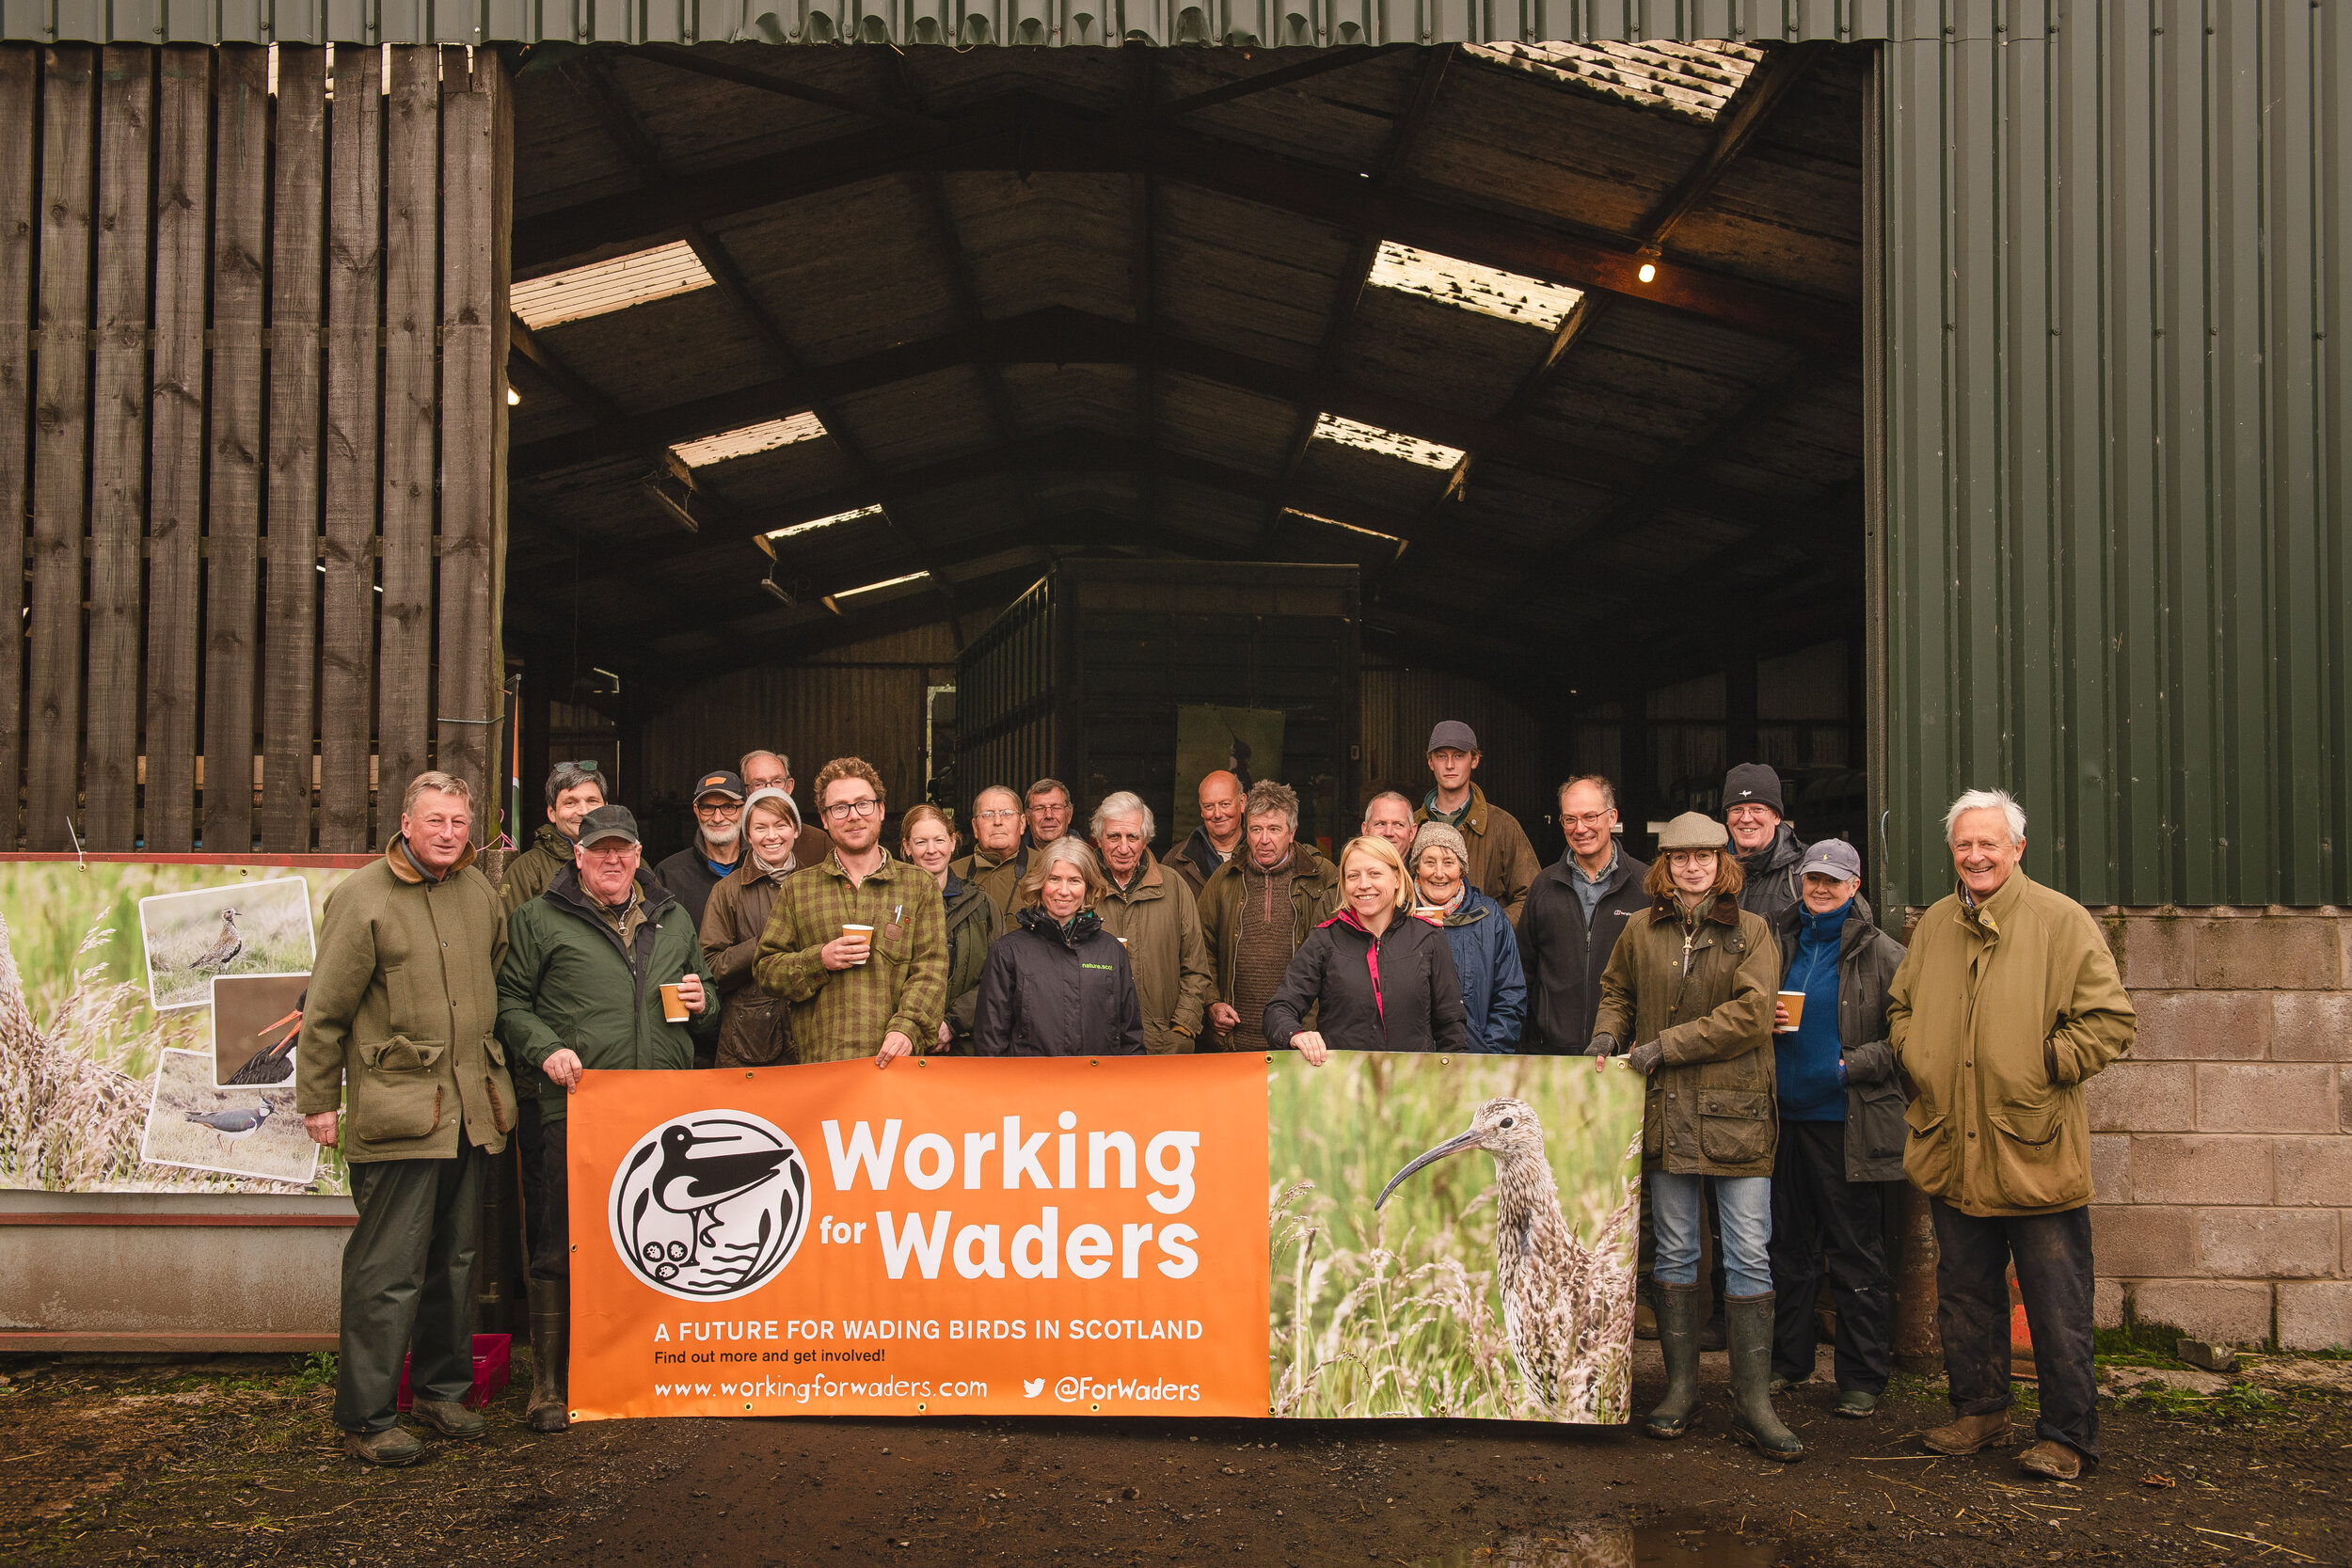 Farmers gathered to discuss wader conservation at Falnash Farm, near Hawick